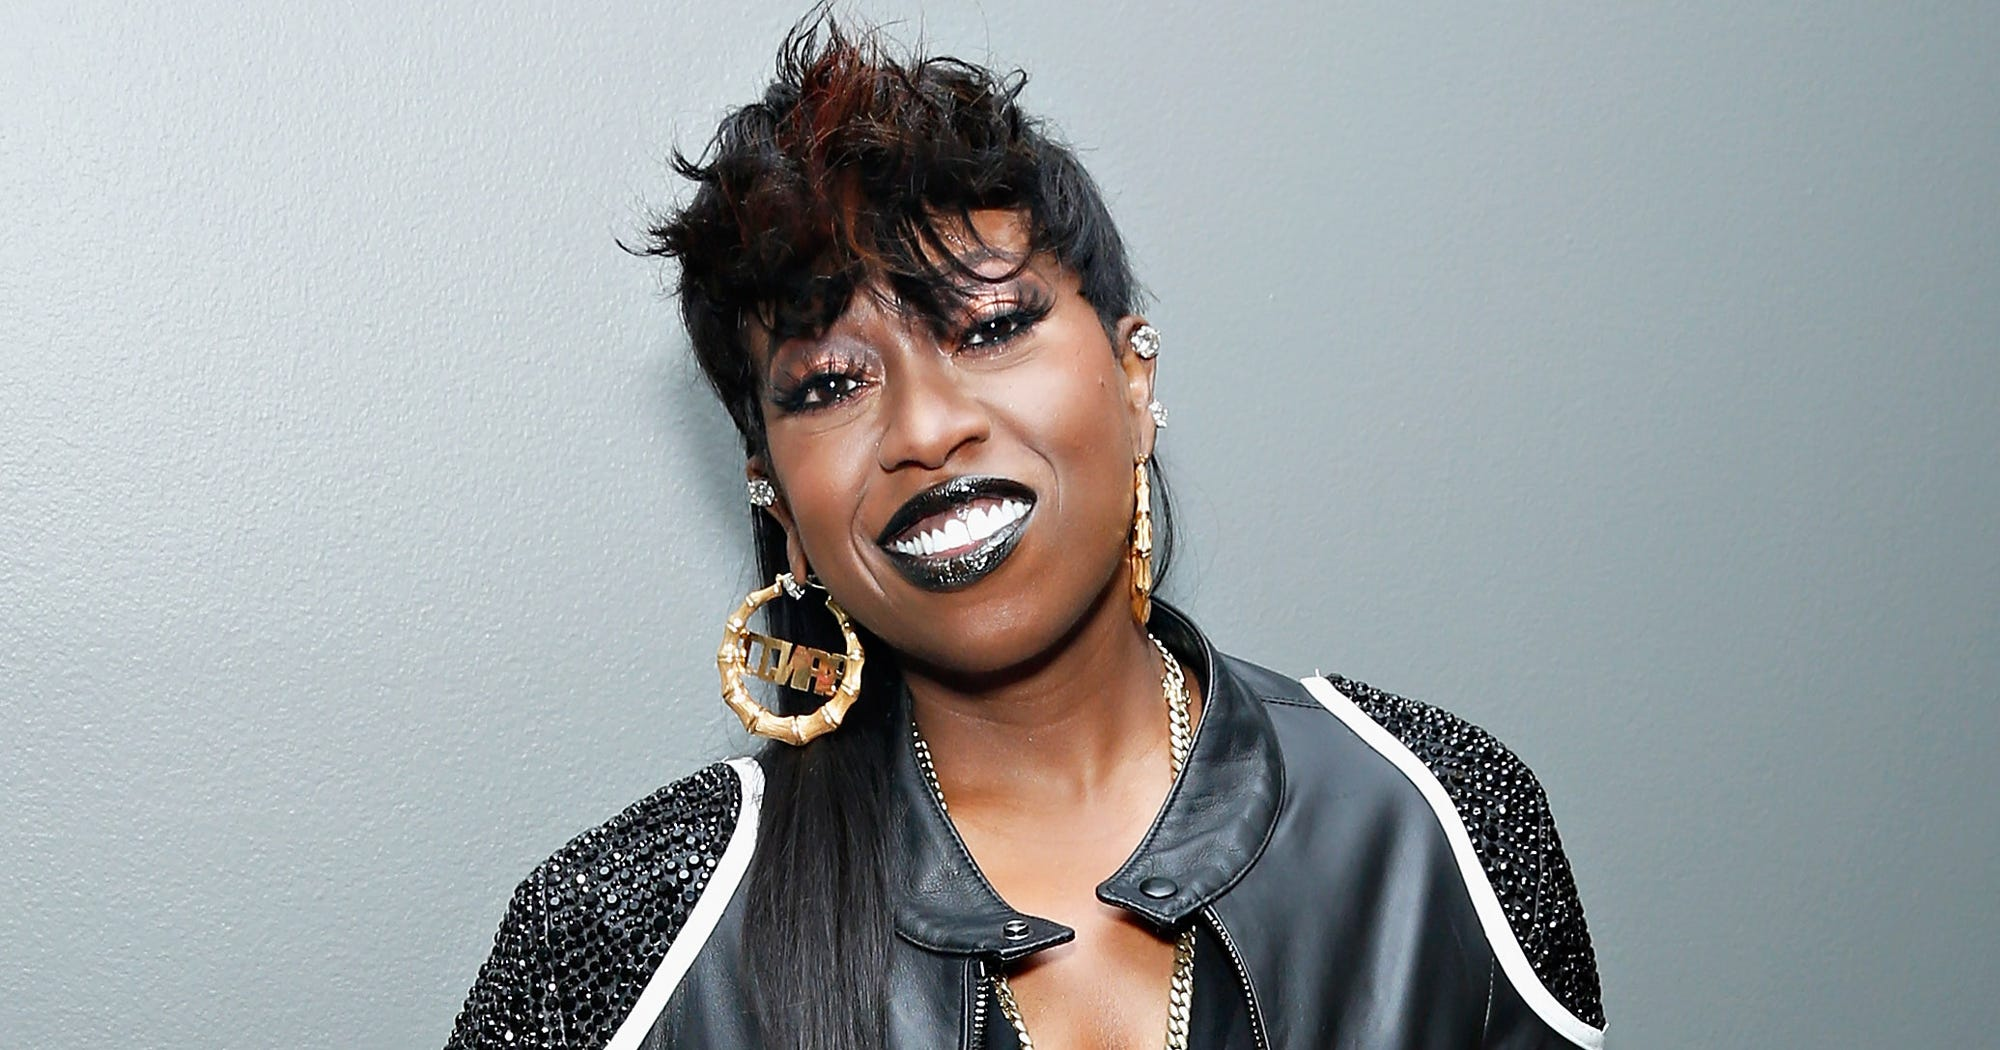 A Petition Is Asking A Virginia Town To Replace Their Confederate Monument With A Missy Elliott Statue